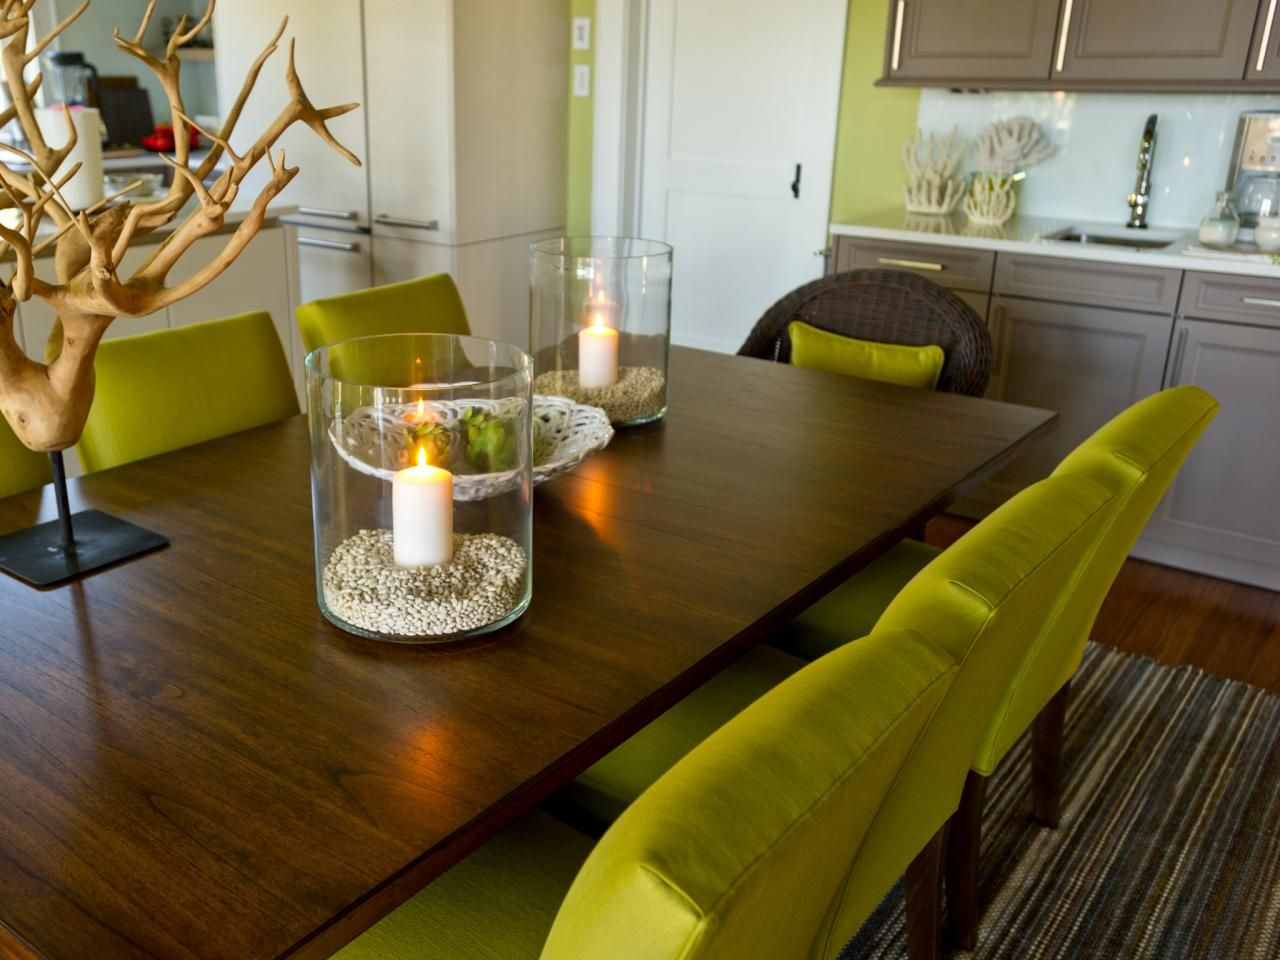 Chartreuse upholstered dining chairs